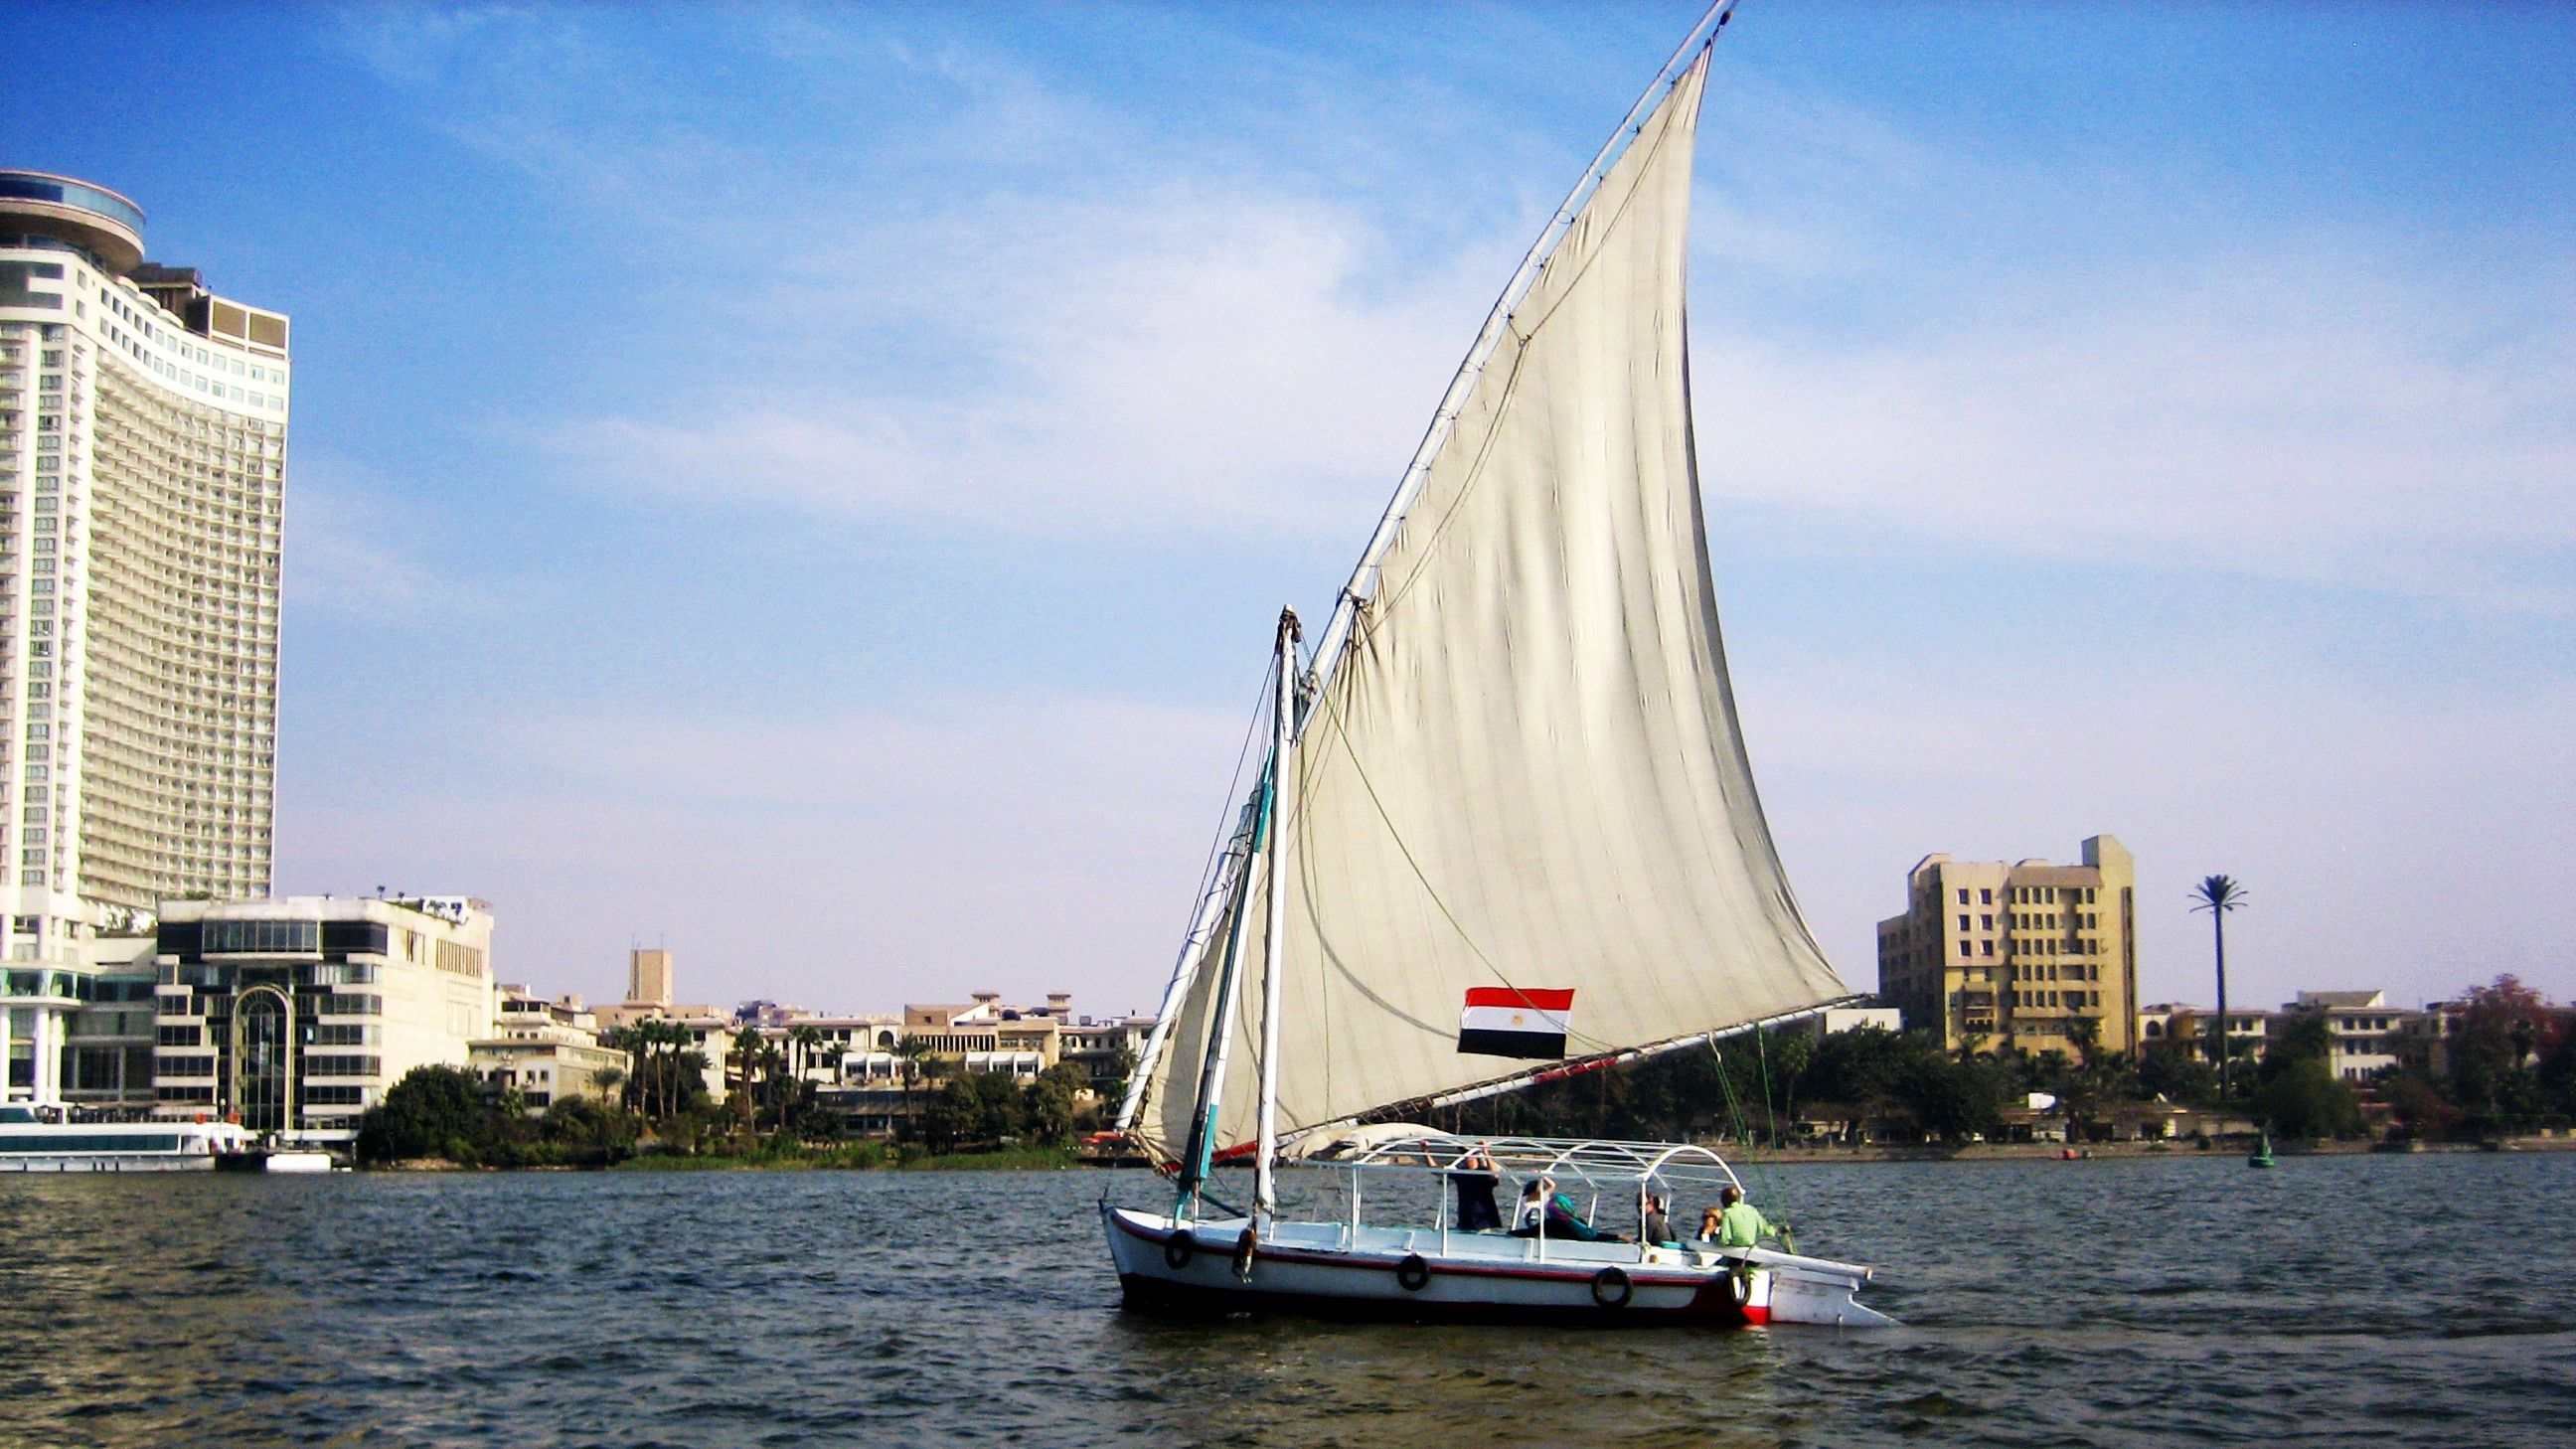 Boat cruising at the River Nile during the day in Cairo